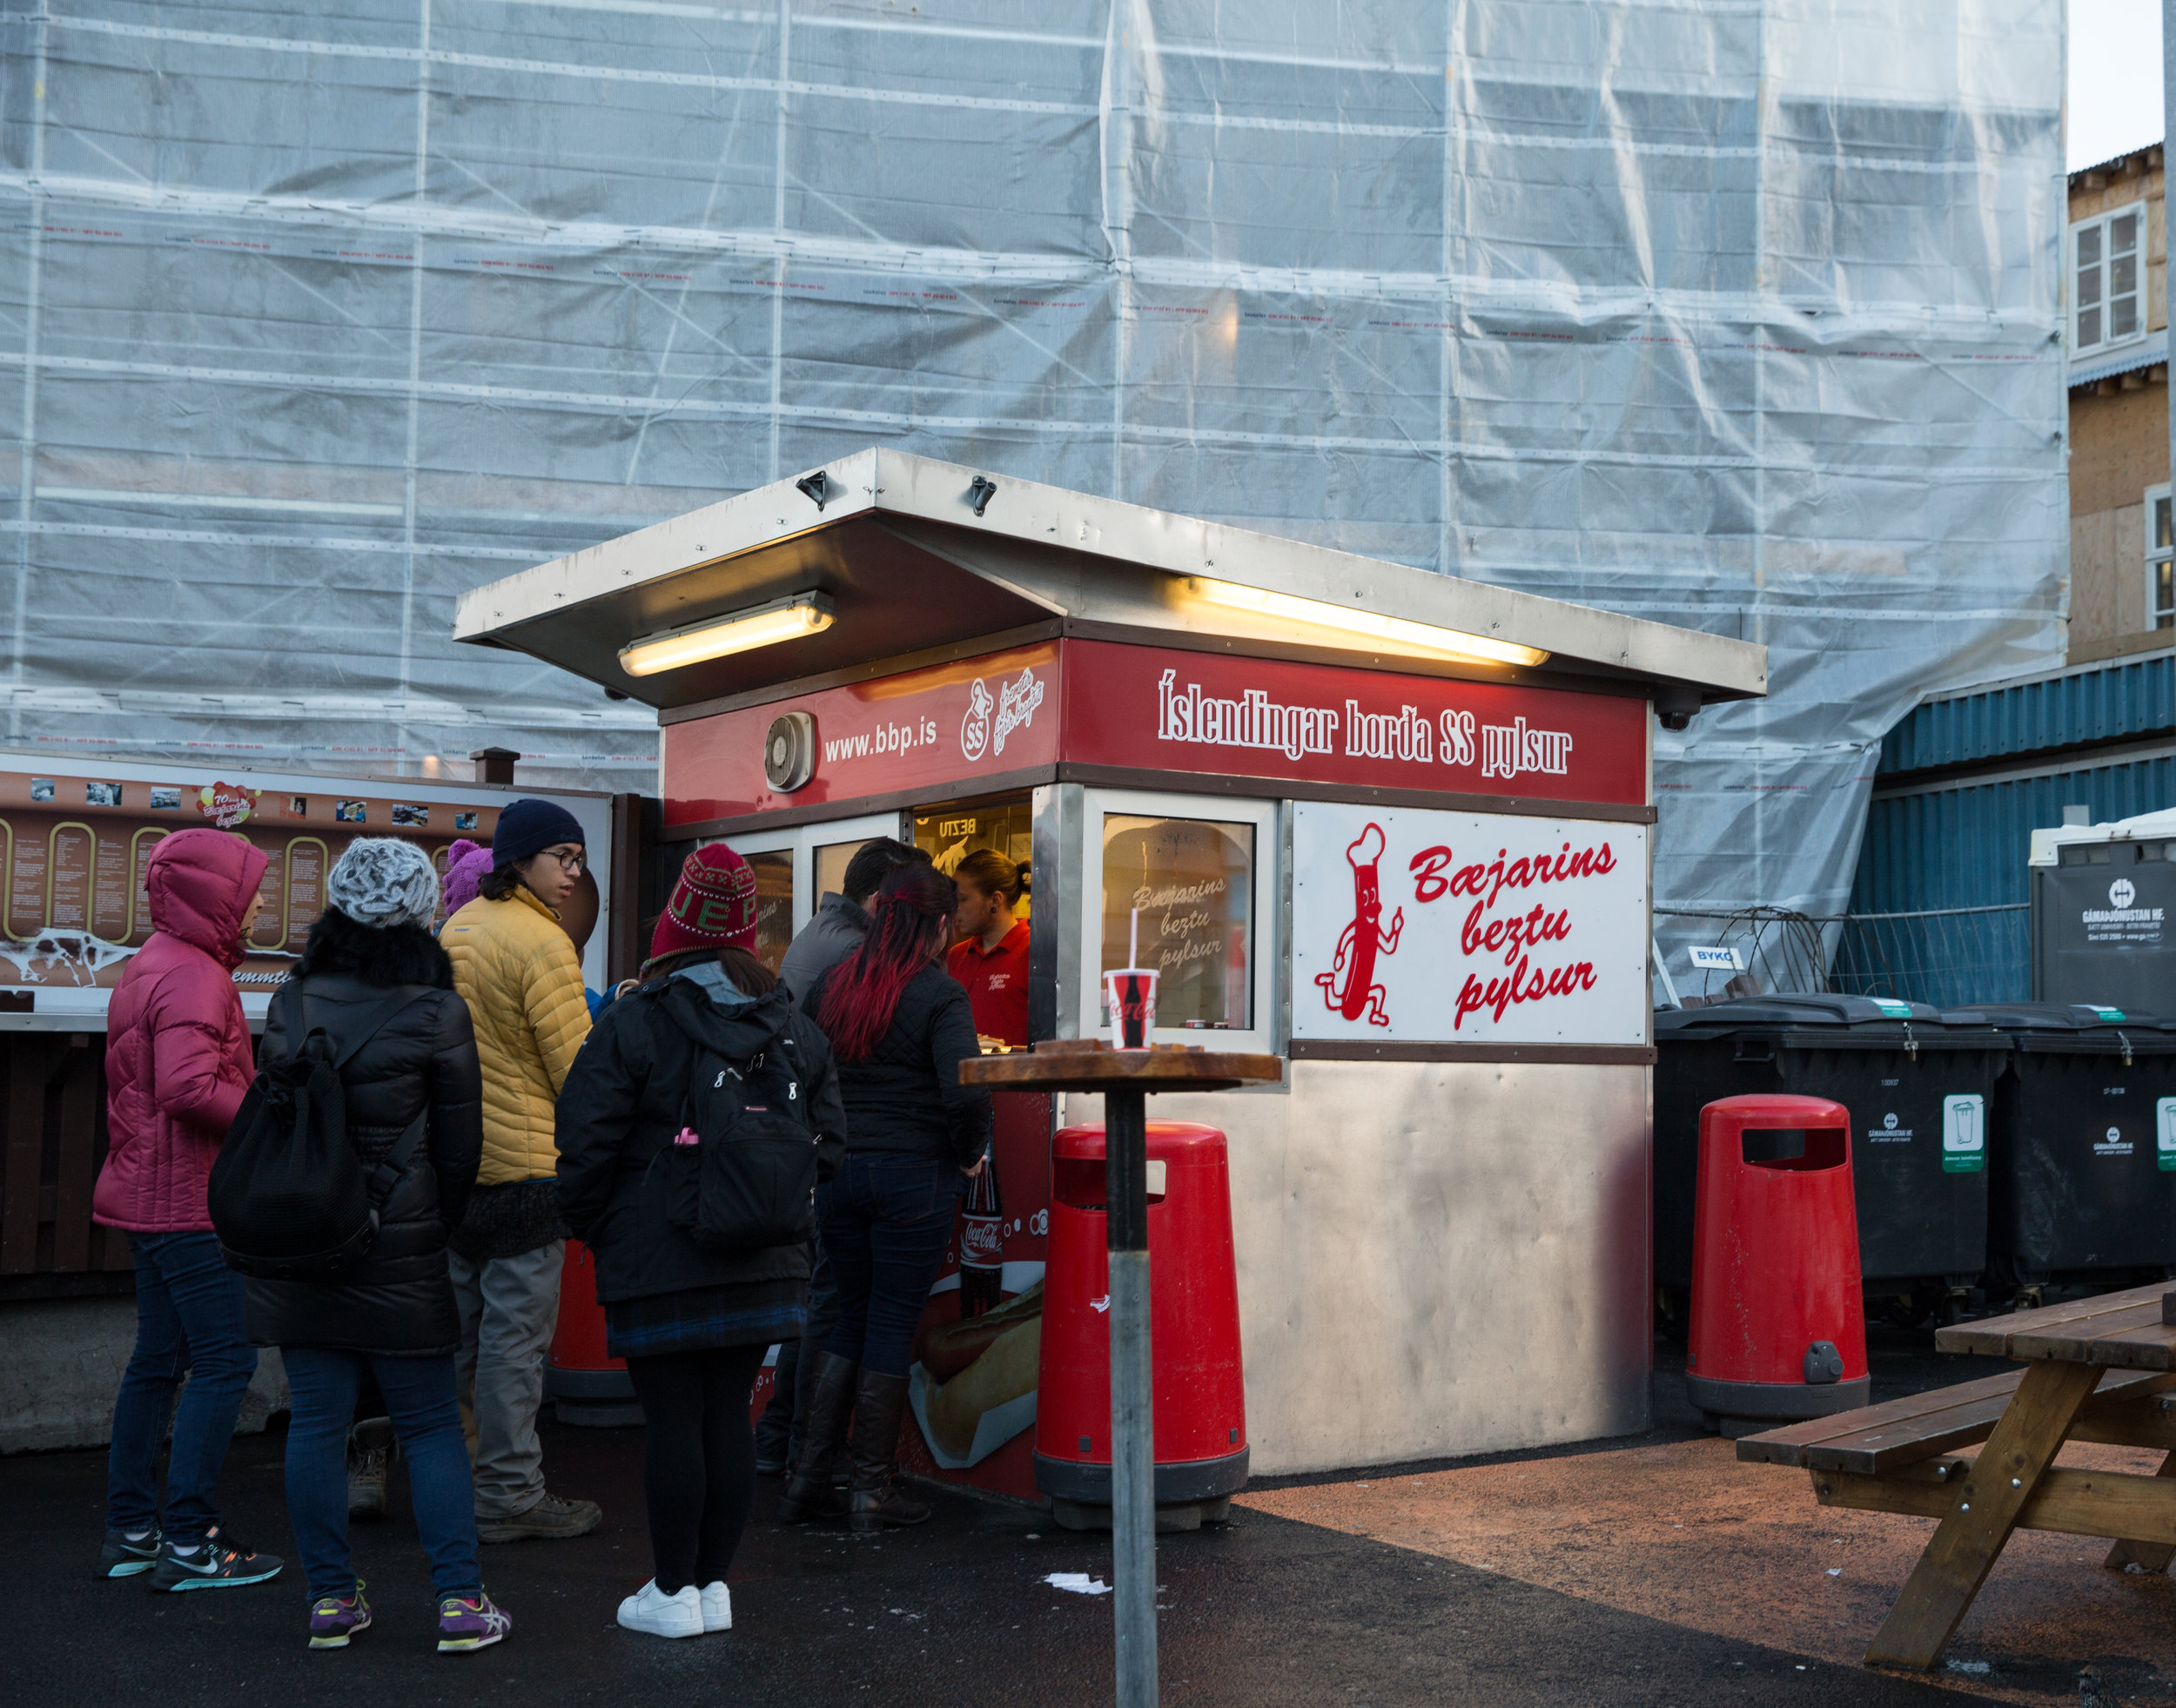 I had to experience the glory of the original Bæjarins Beztu Pylsur hotdog stand, located in Tryggvagata, Reykjavik. The godsends are made primariliy of lamb, with a beef and pork mixture. The stand has been in continuous operation since 1937. Visited by the likes of Metallica's James Hetfield, President Bill Clinton, it showed up on my radar first in Anthony Bourdain's  No Reservations .